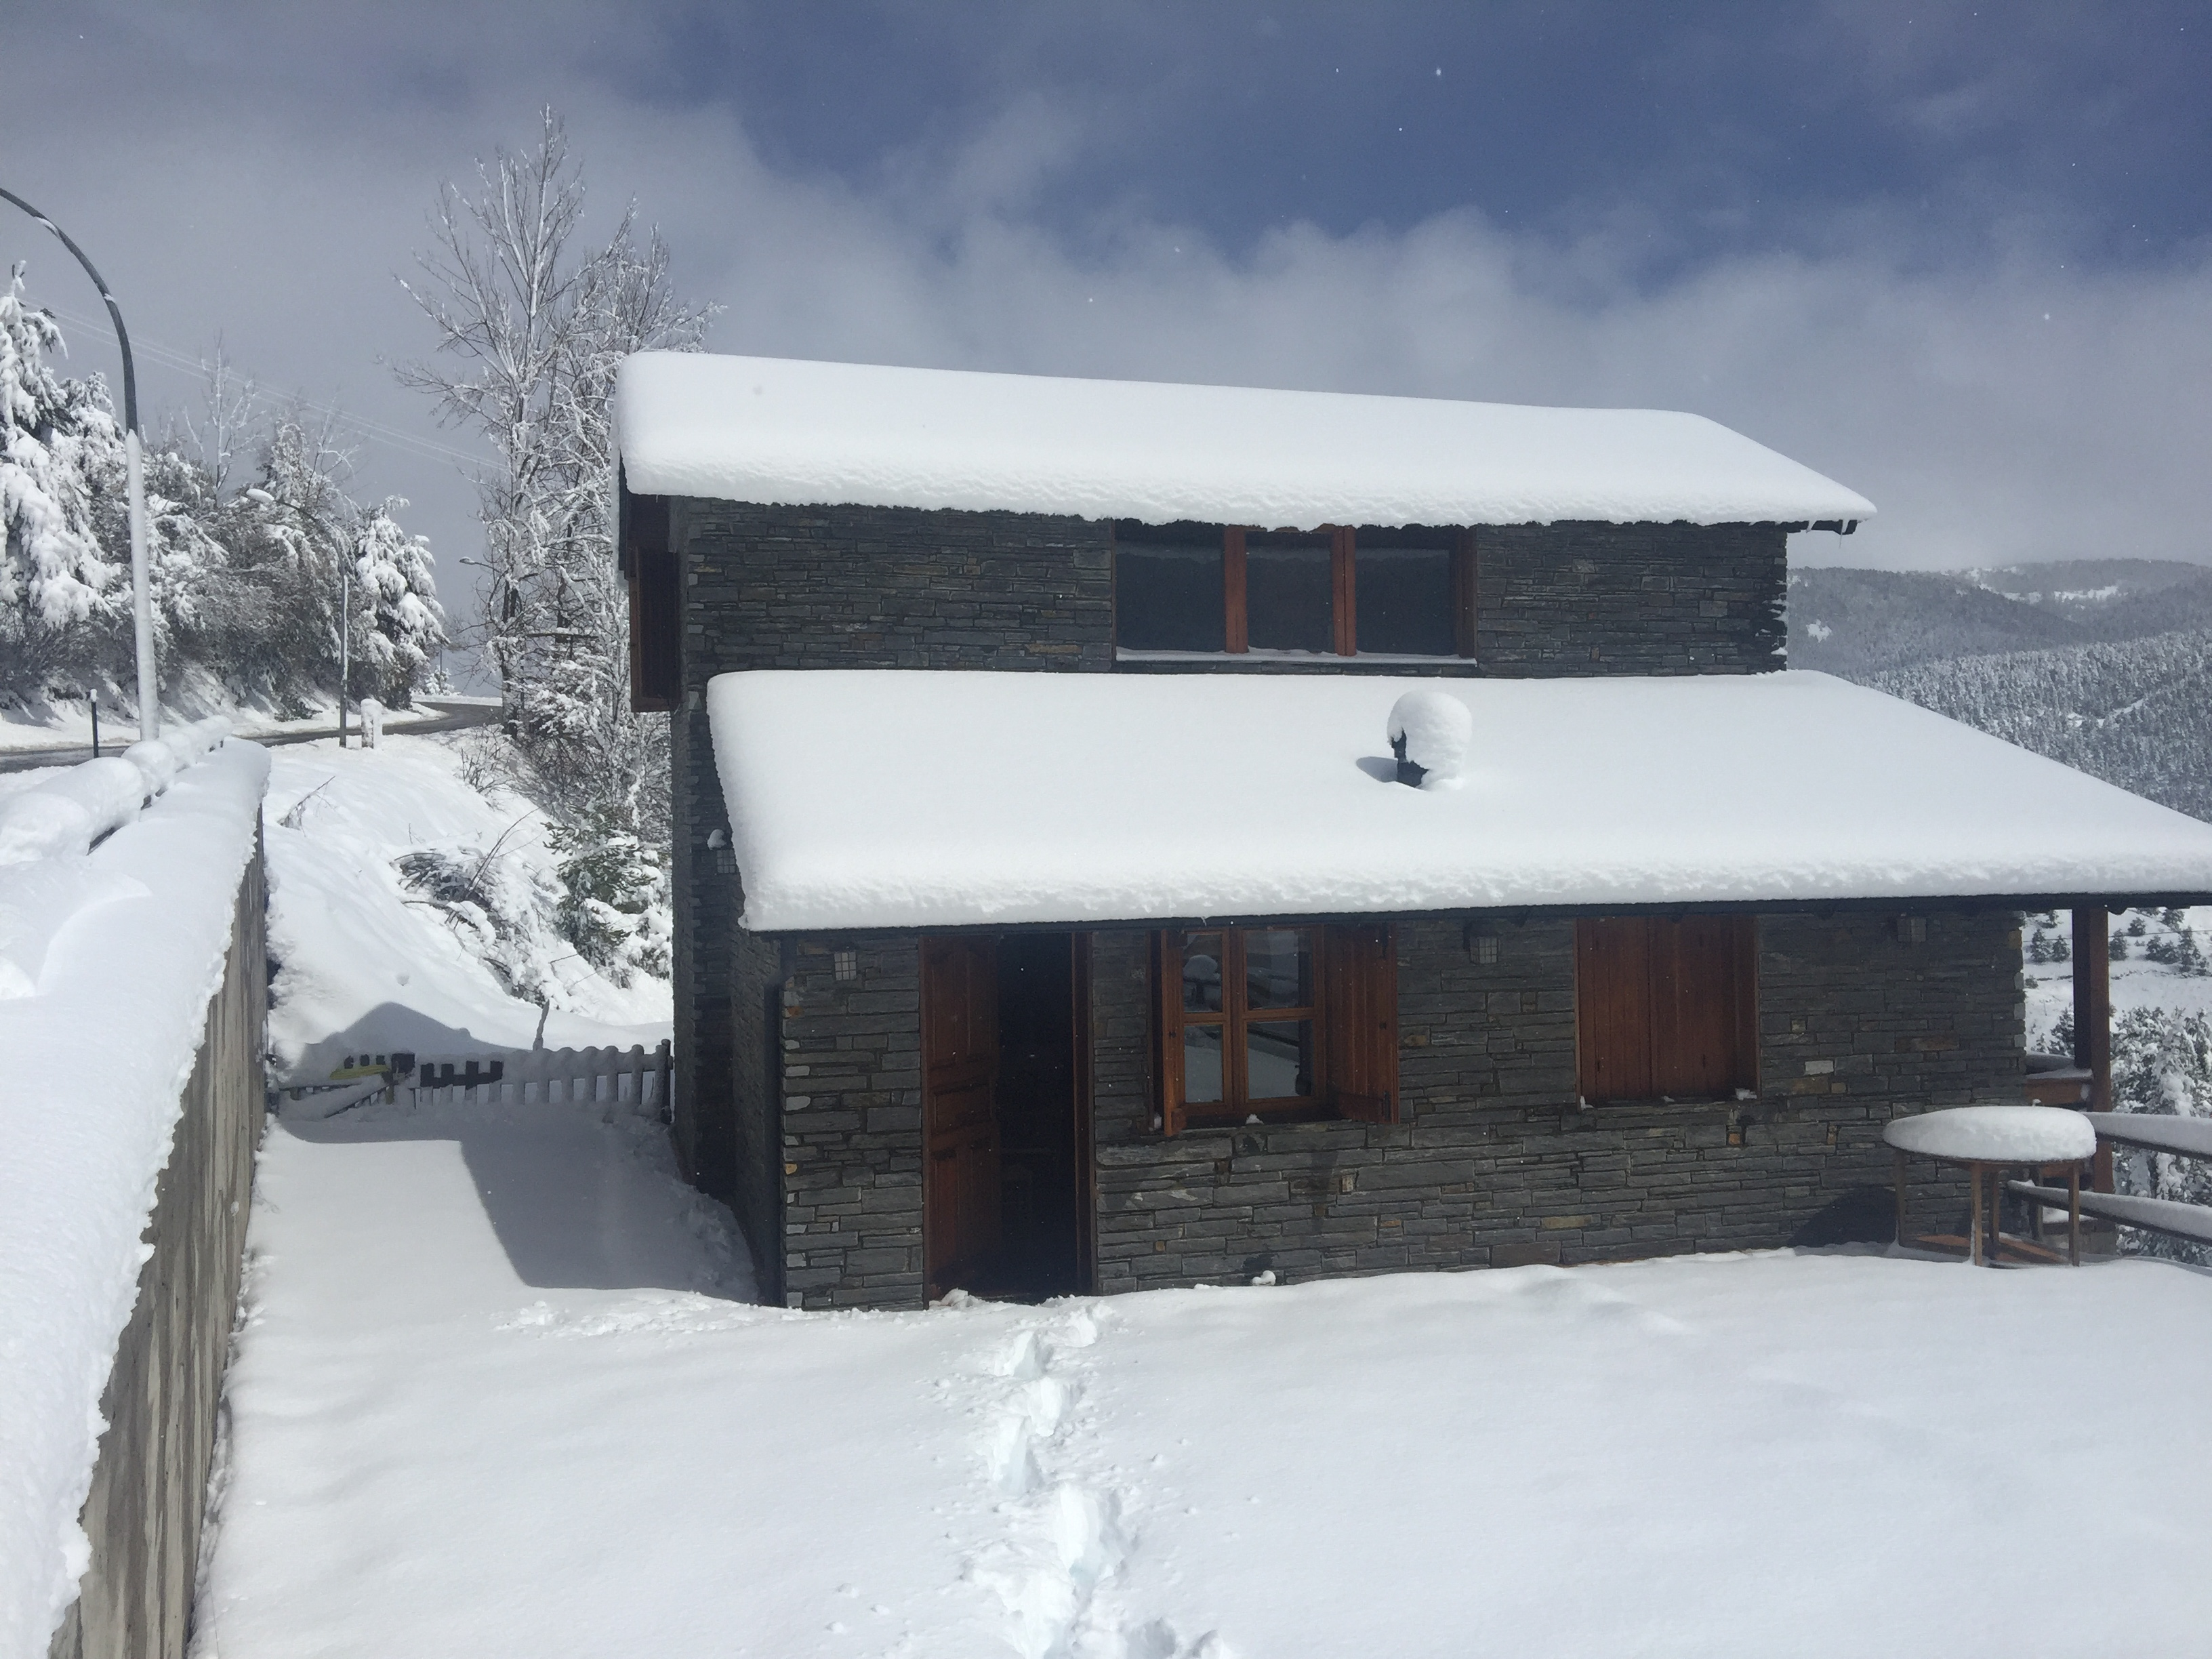 the Chalet during the winter